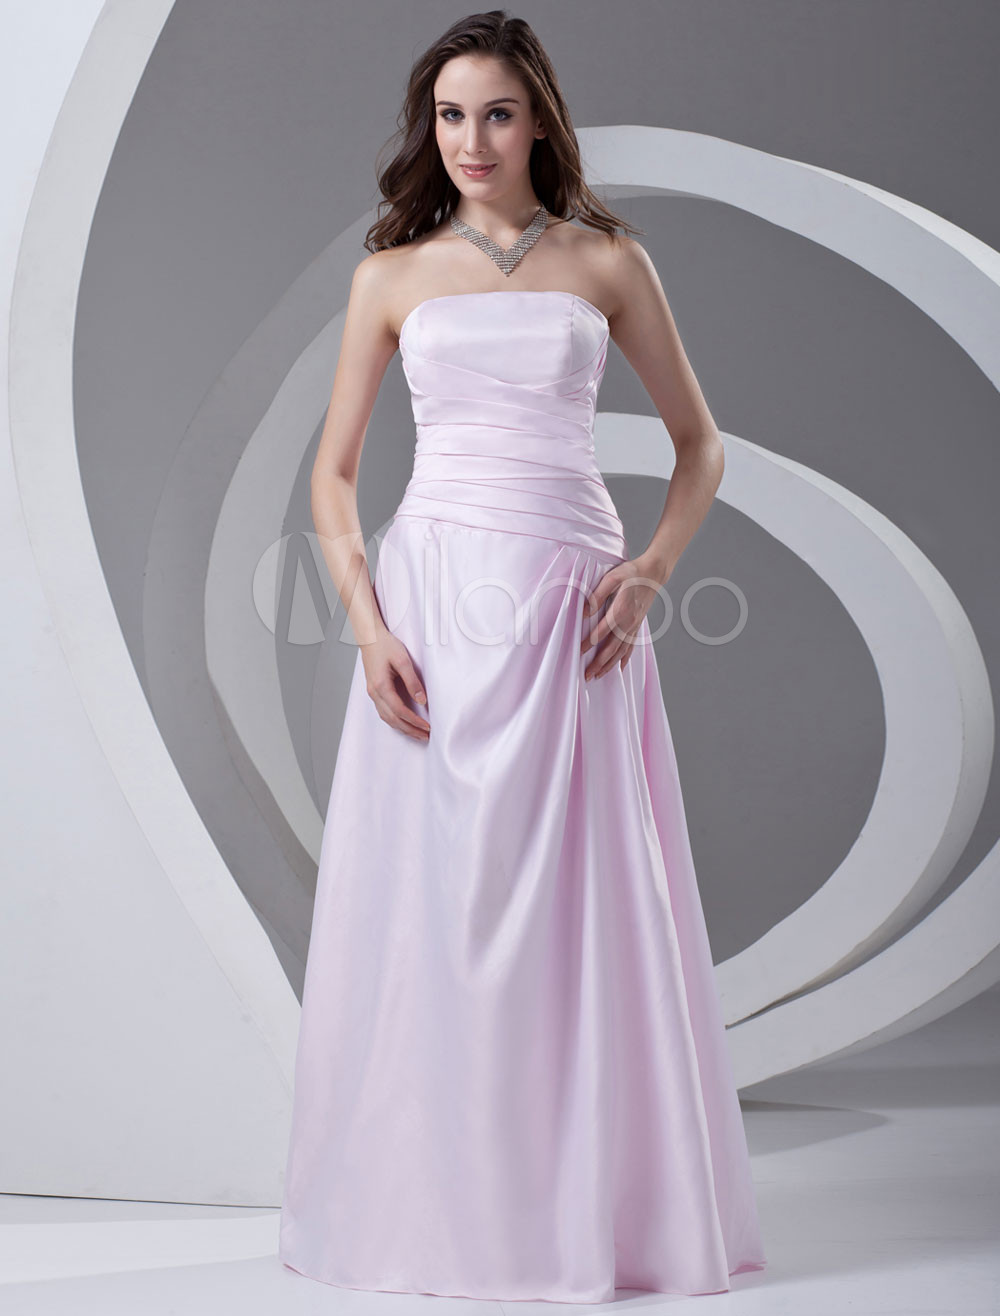 A-line Pink Satin Ruched Strapless Floor-Length Fashion Bridesmaid Dress